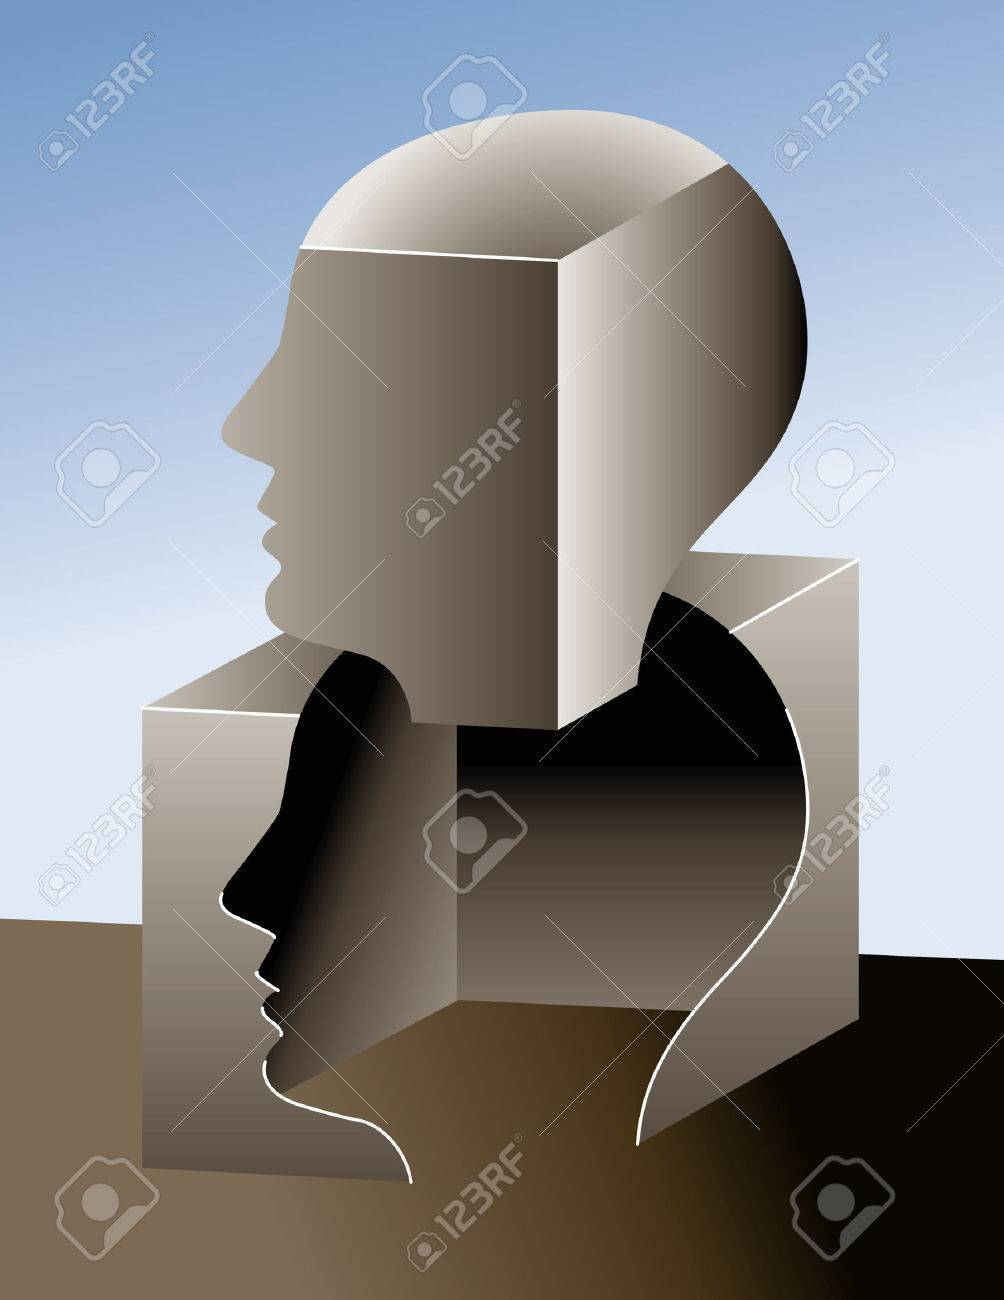 Thinking outside of the box Stock Vector - 3540340